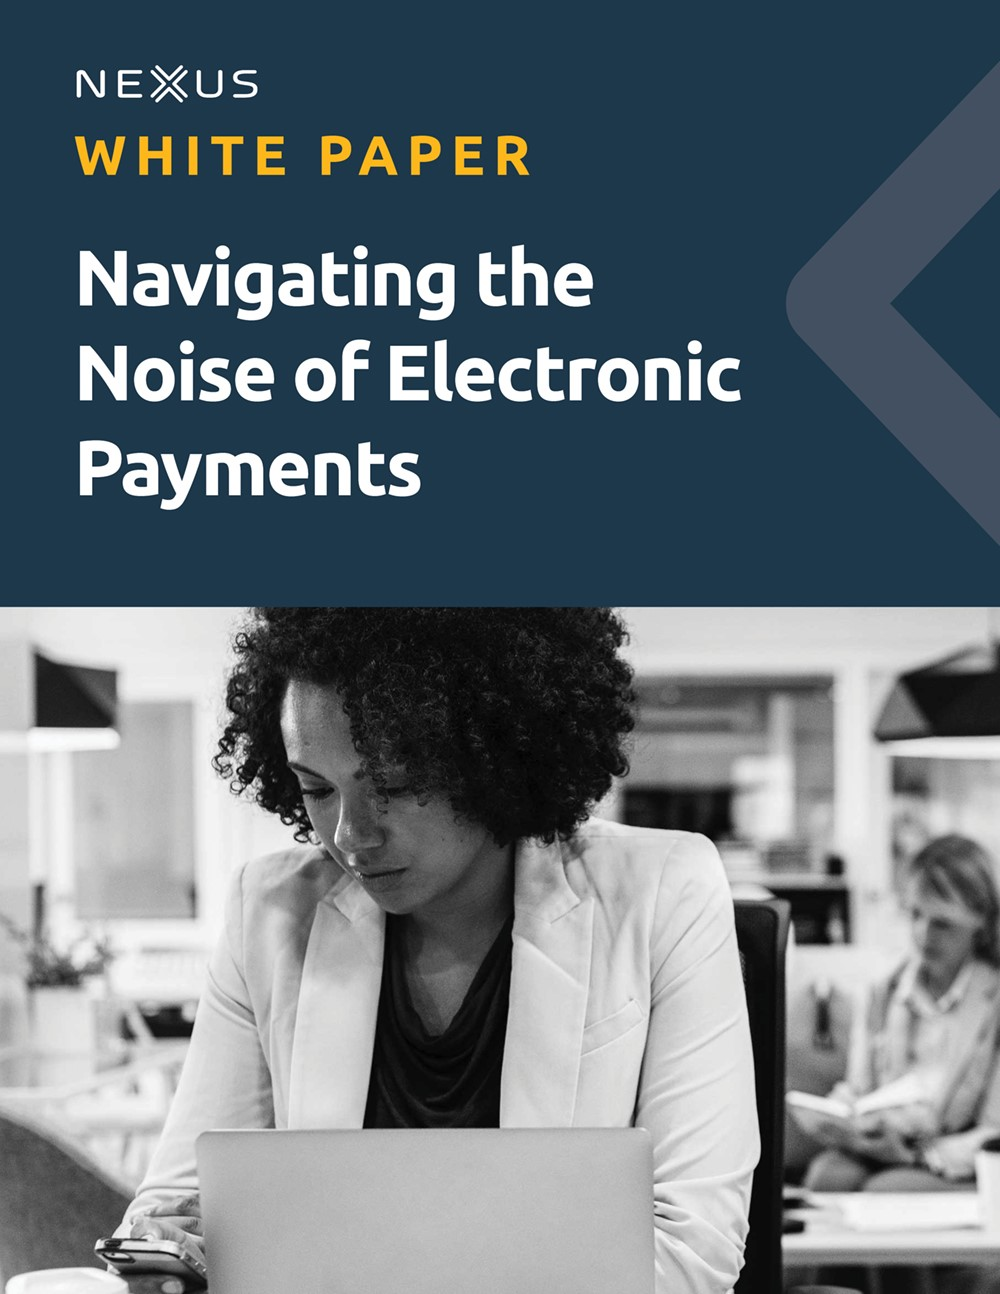 Navigating the Noise Electronic Payments Thumbnail 2.jpg